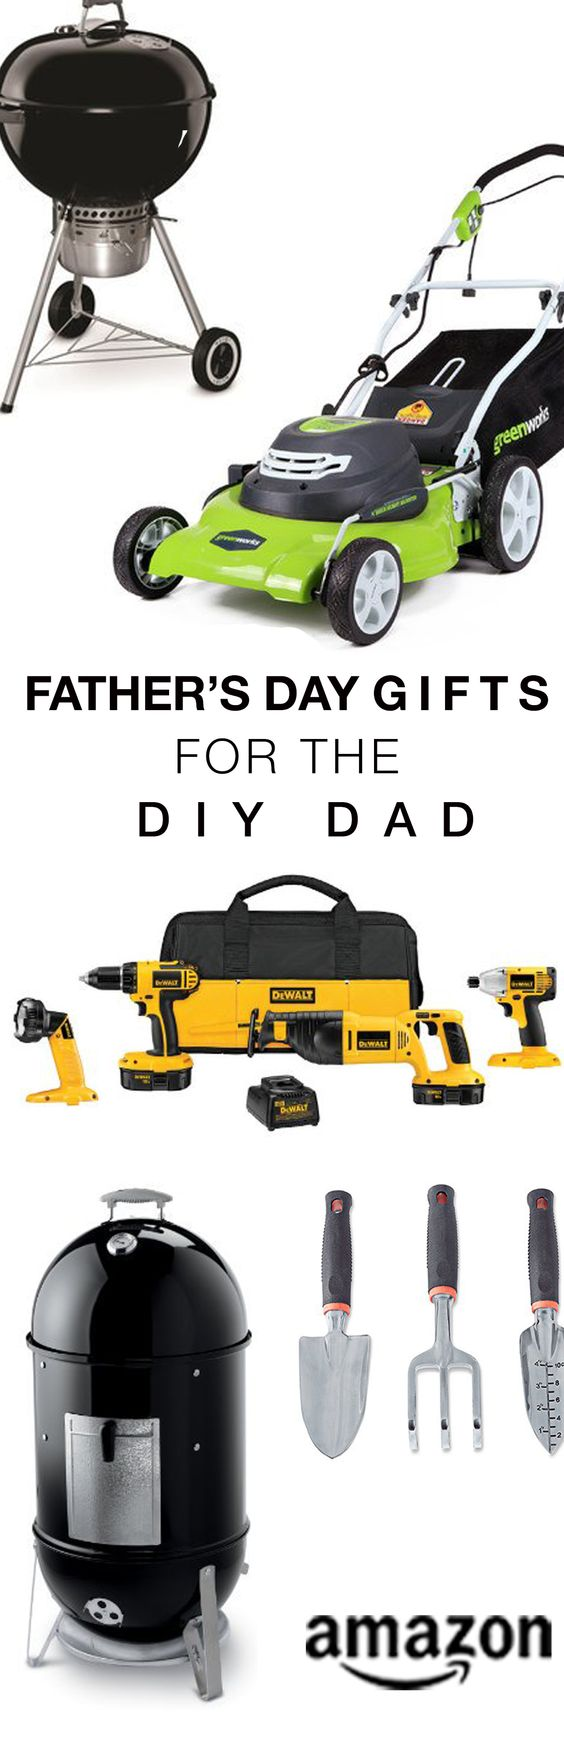 amazon father's day coupons